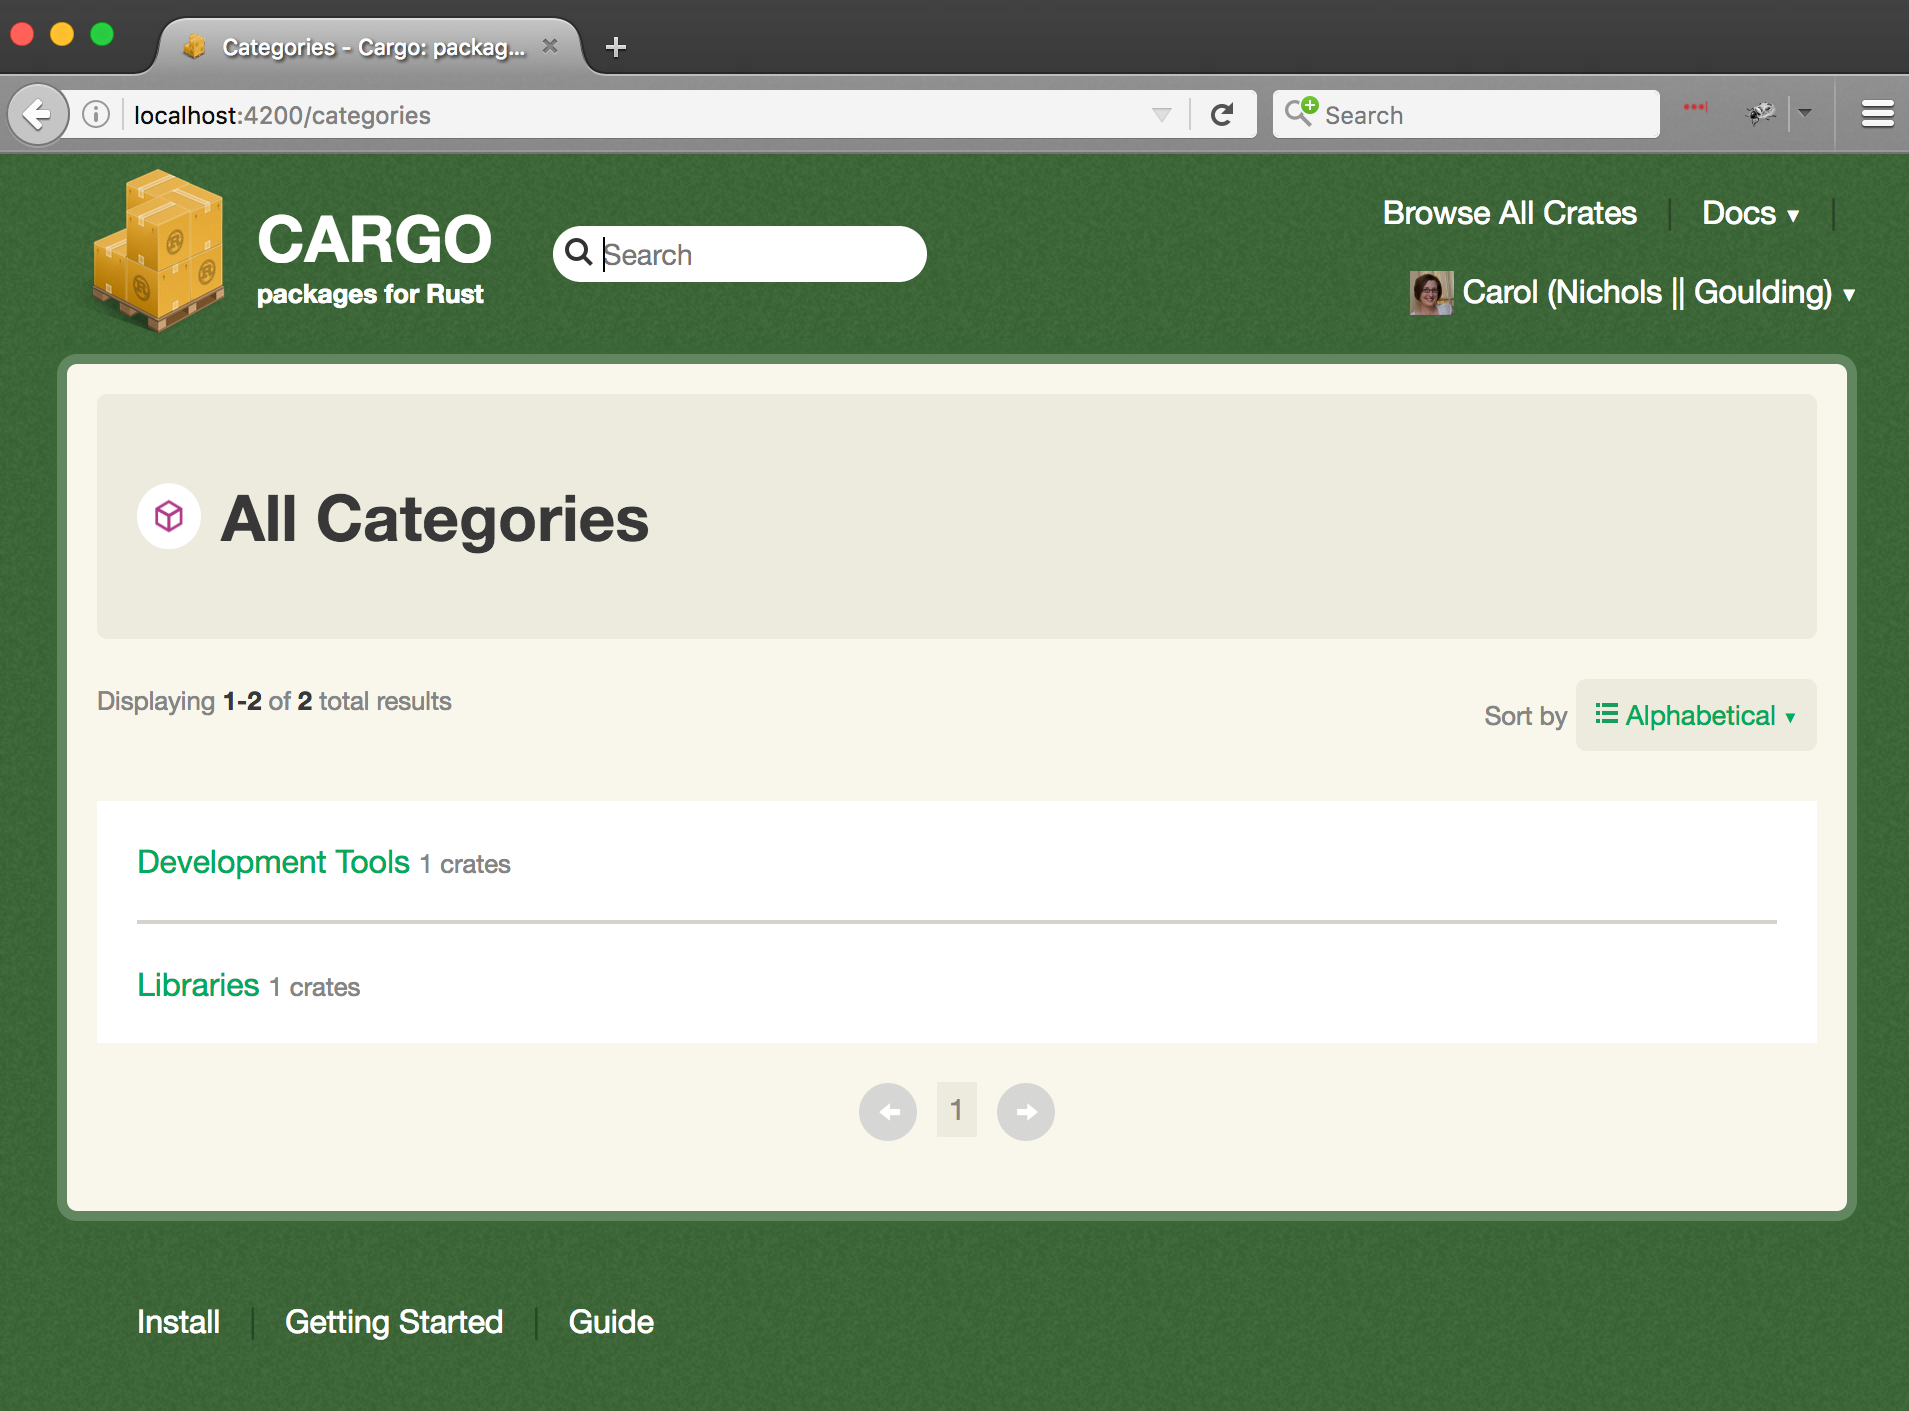 categories-page